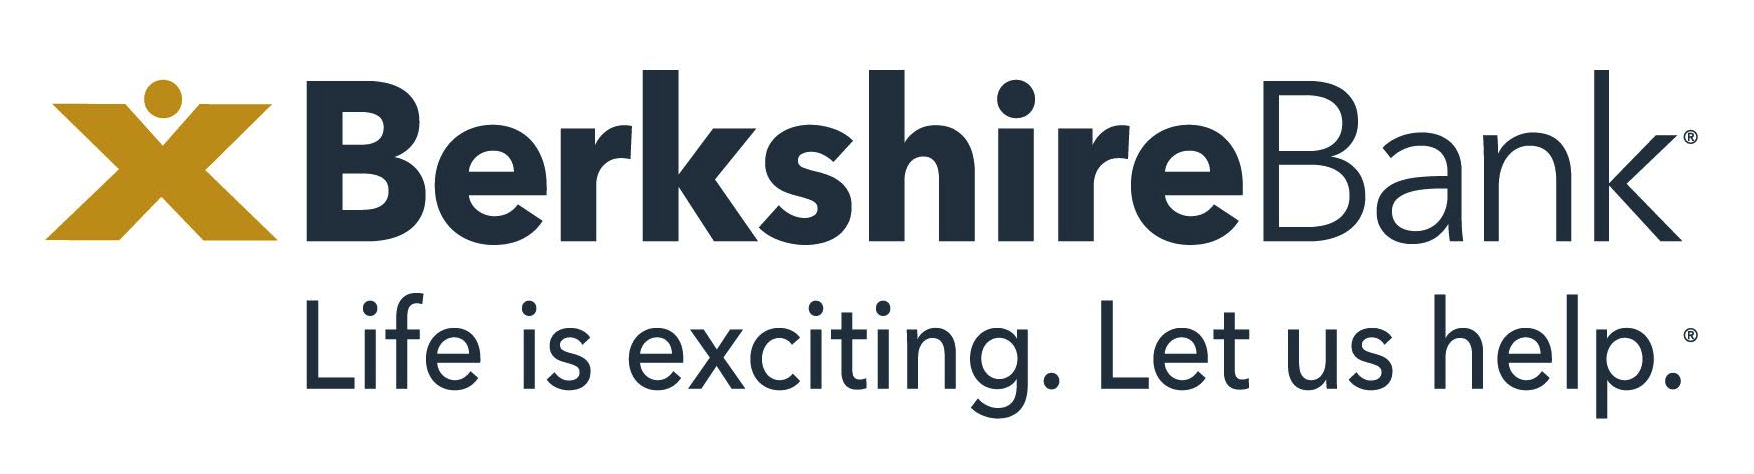 berkshire-bank-logo-v2.png